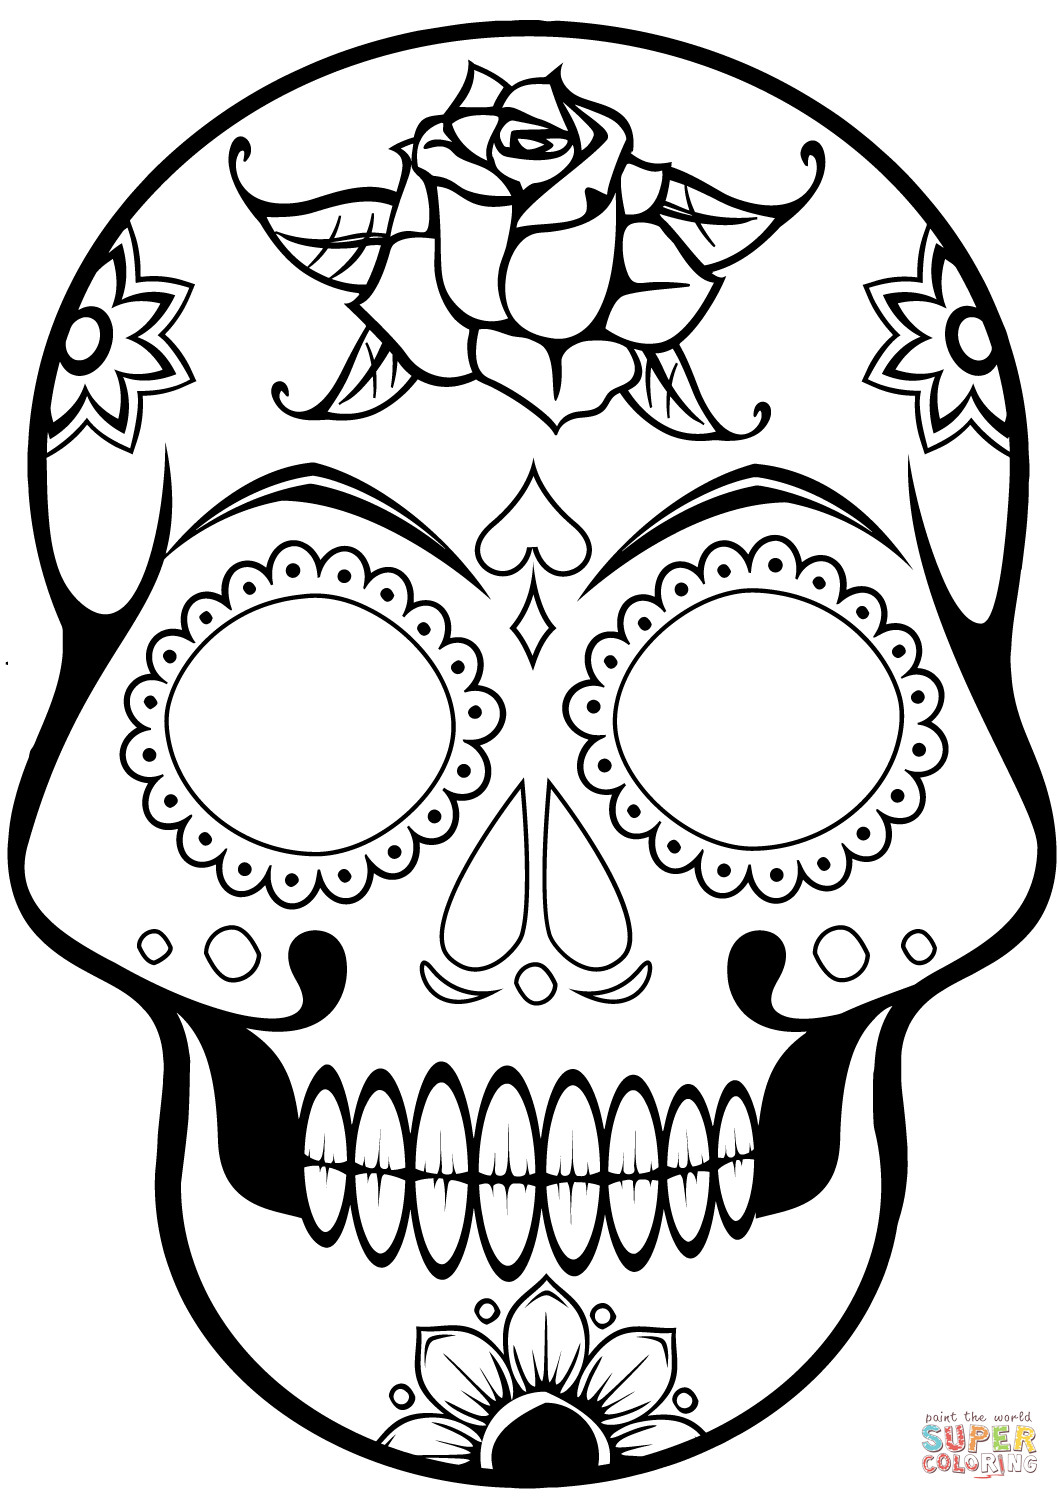 day of the dead skulls coloring pages dia de los muertos skulls coloring pages at getcolorings dead of day coloring the pages skulls